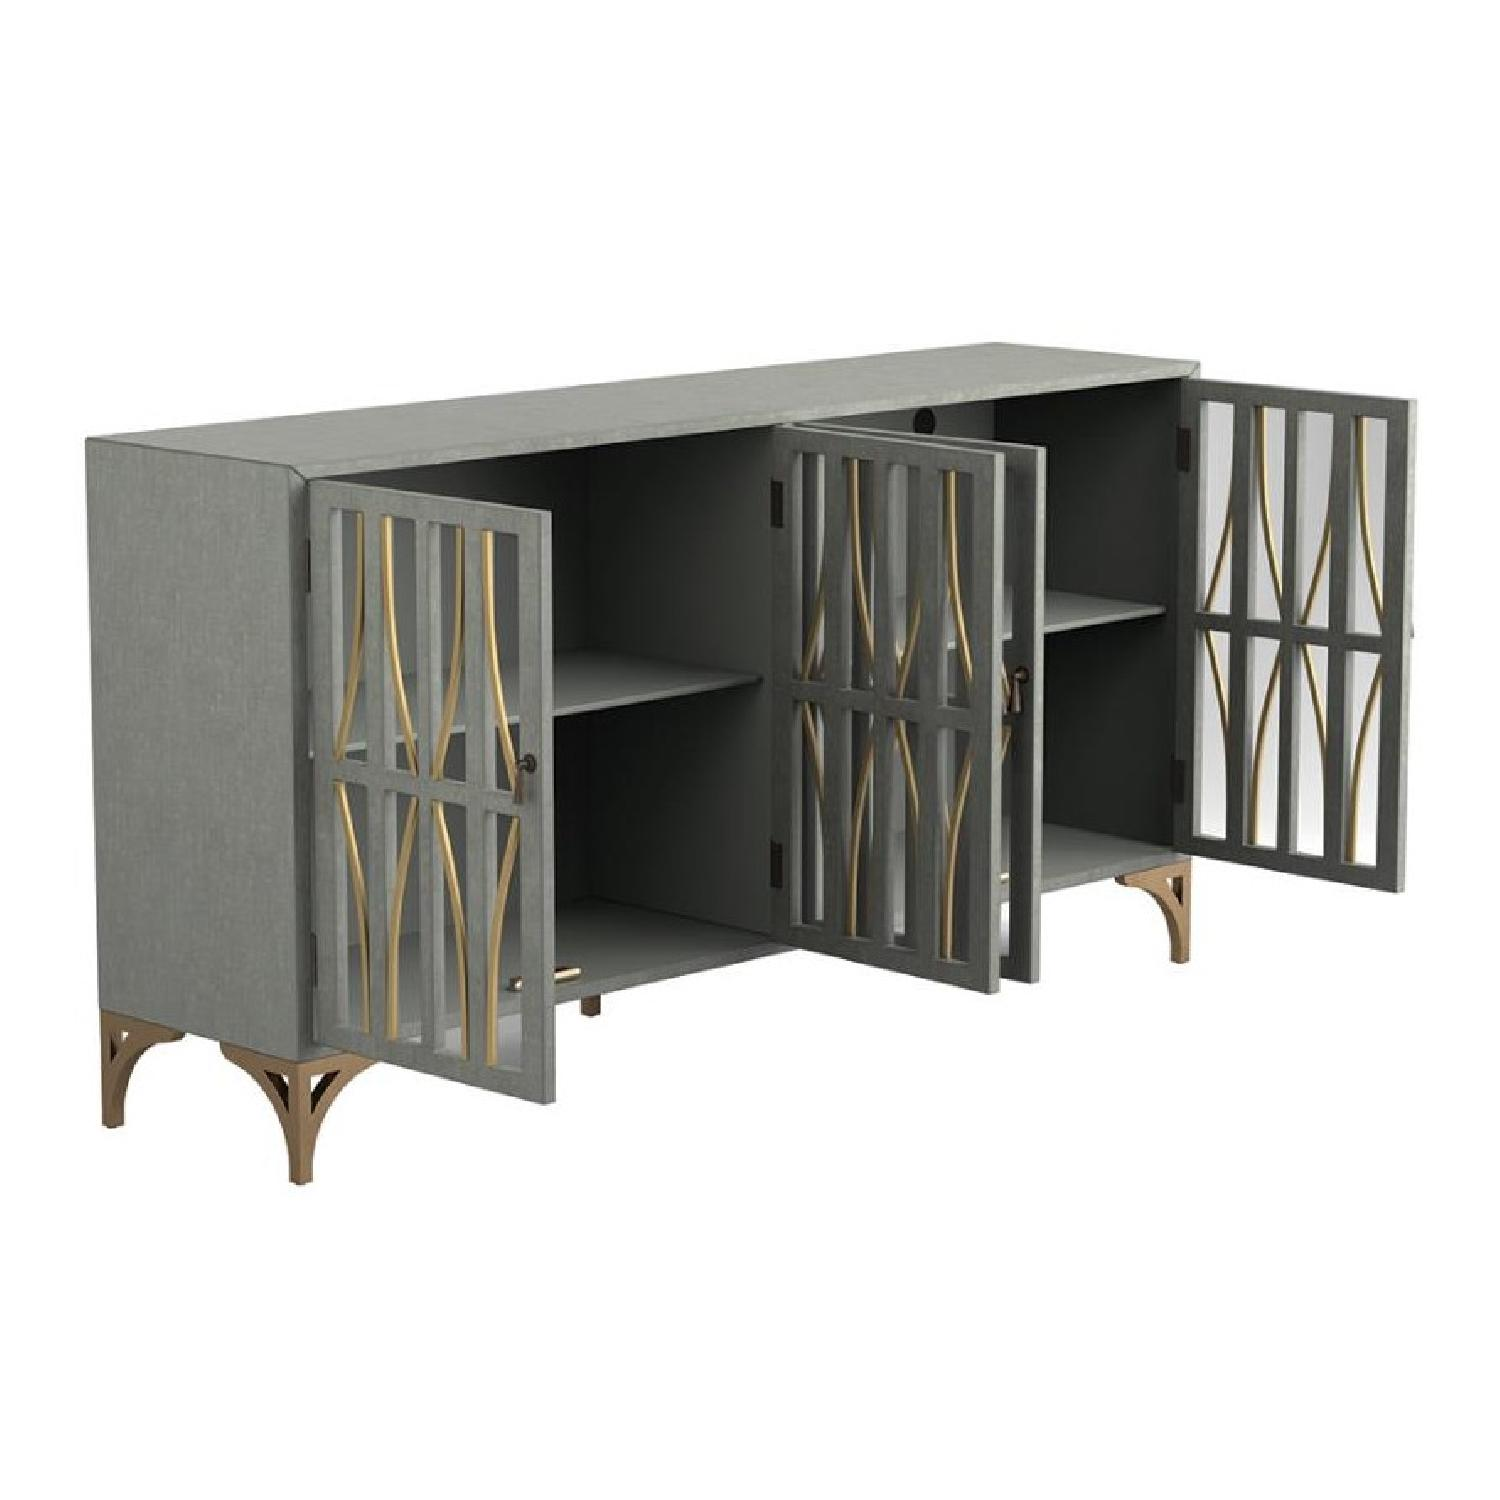 Contemporary Accent Cabinet In Grey Green w/ Bronze Hardware - image-5